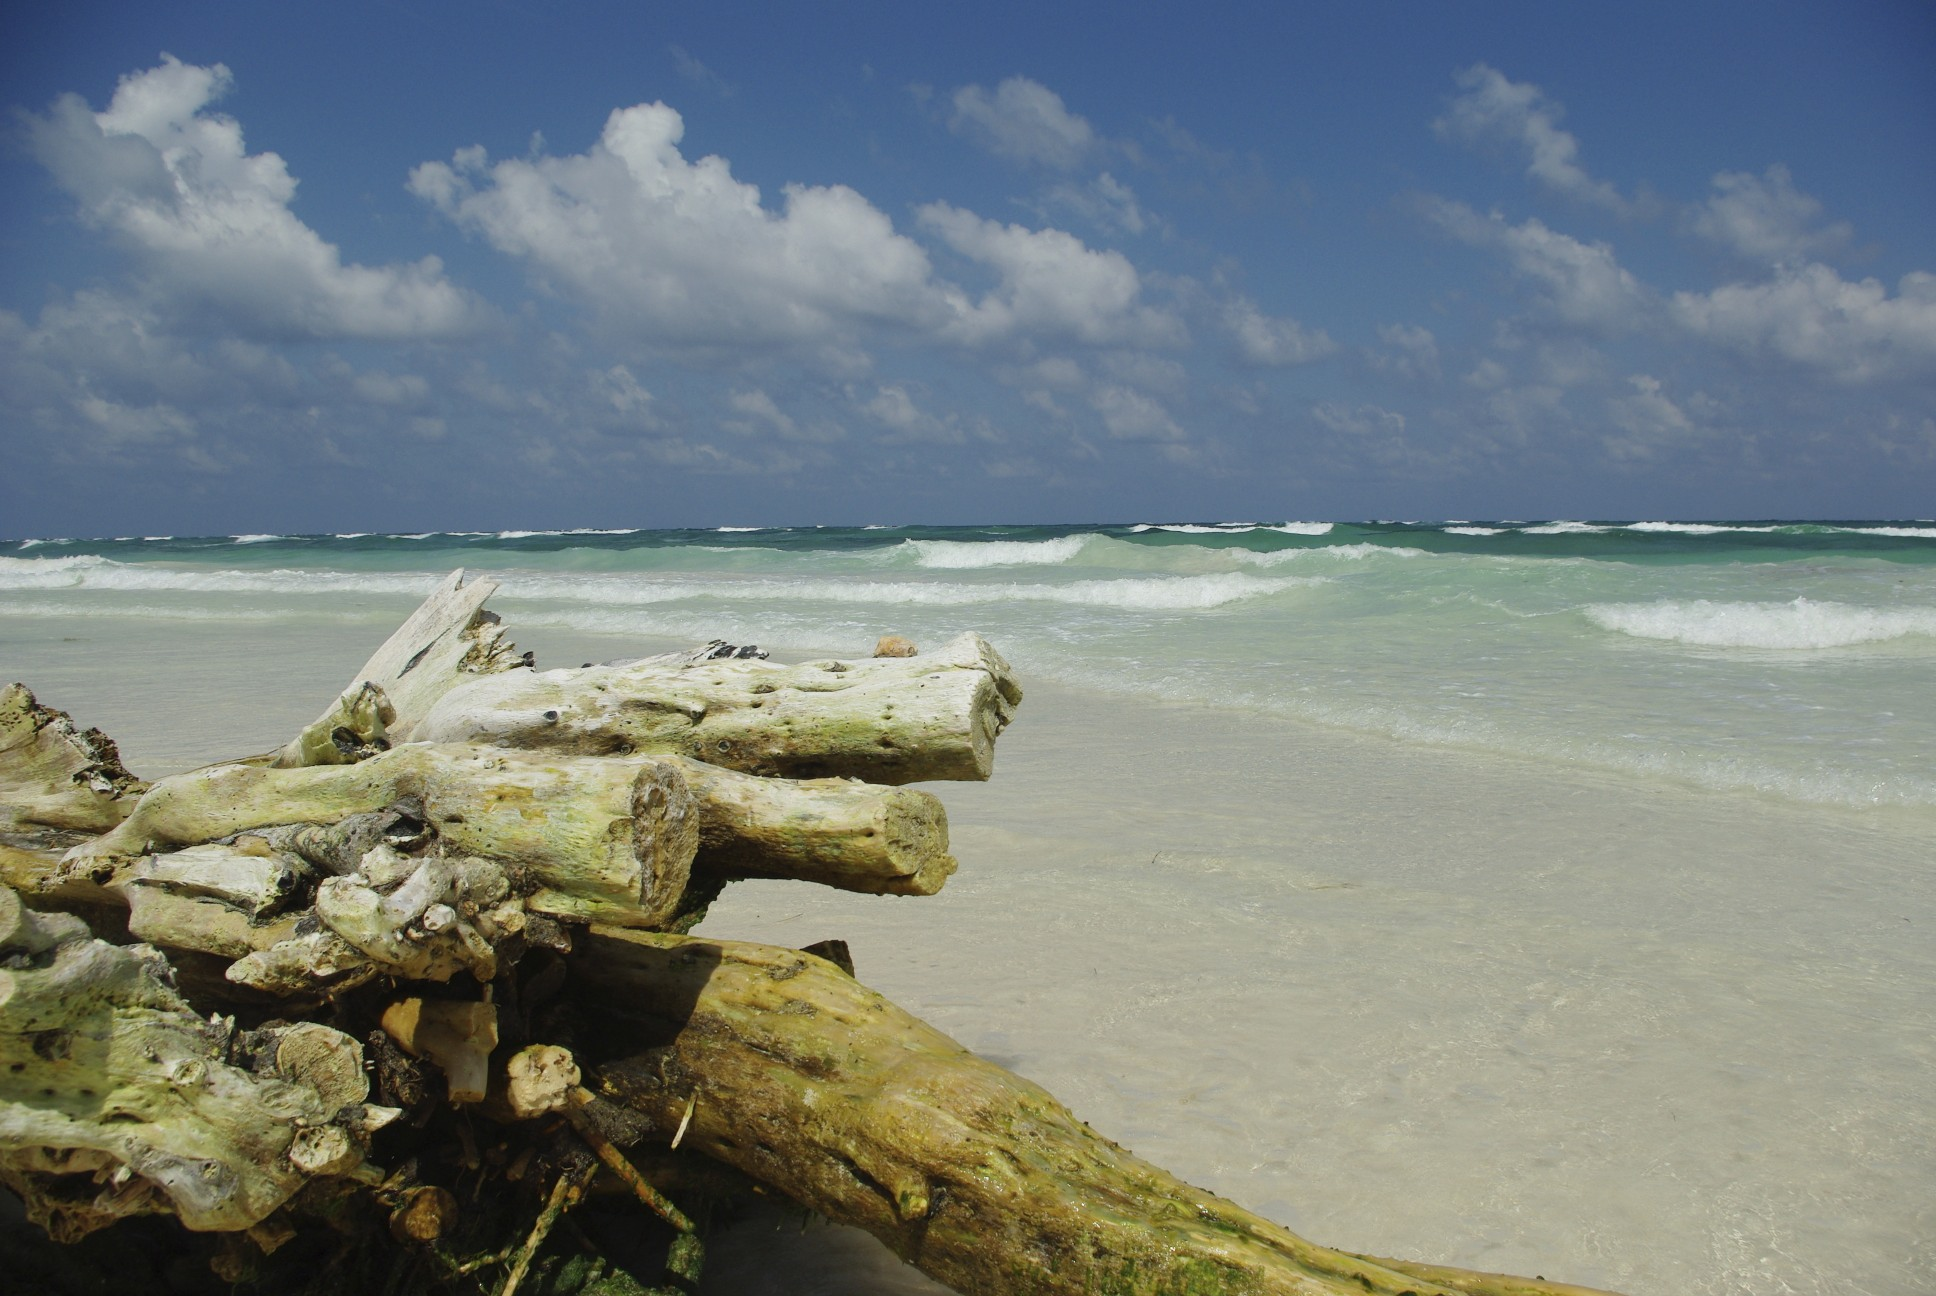 The beaches in Tulum are stunning | © Stopardi/Flickr